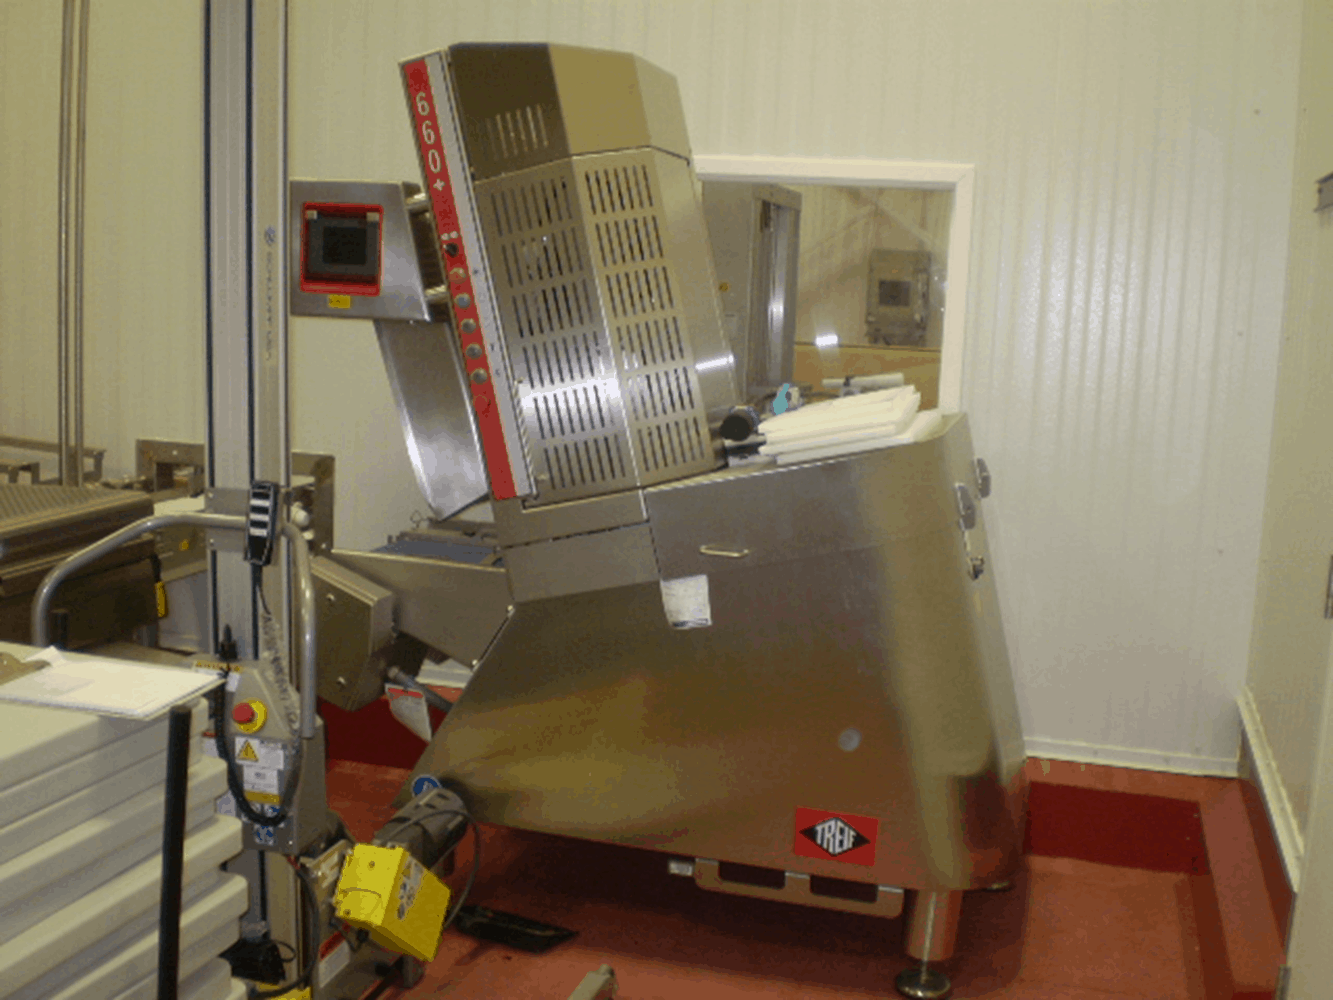 2014 Treif Model 660+ Divider / Meat Slicer, Capable of Up to 3 Rows of Slicing, Touch Screen with Intuitive Menus. Previously Operated on Pepperoni.